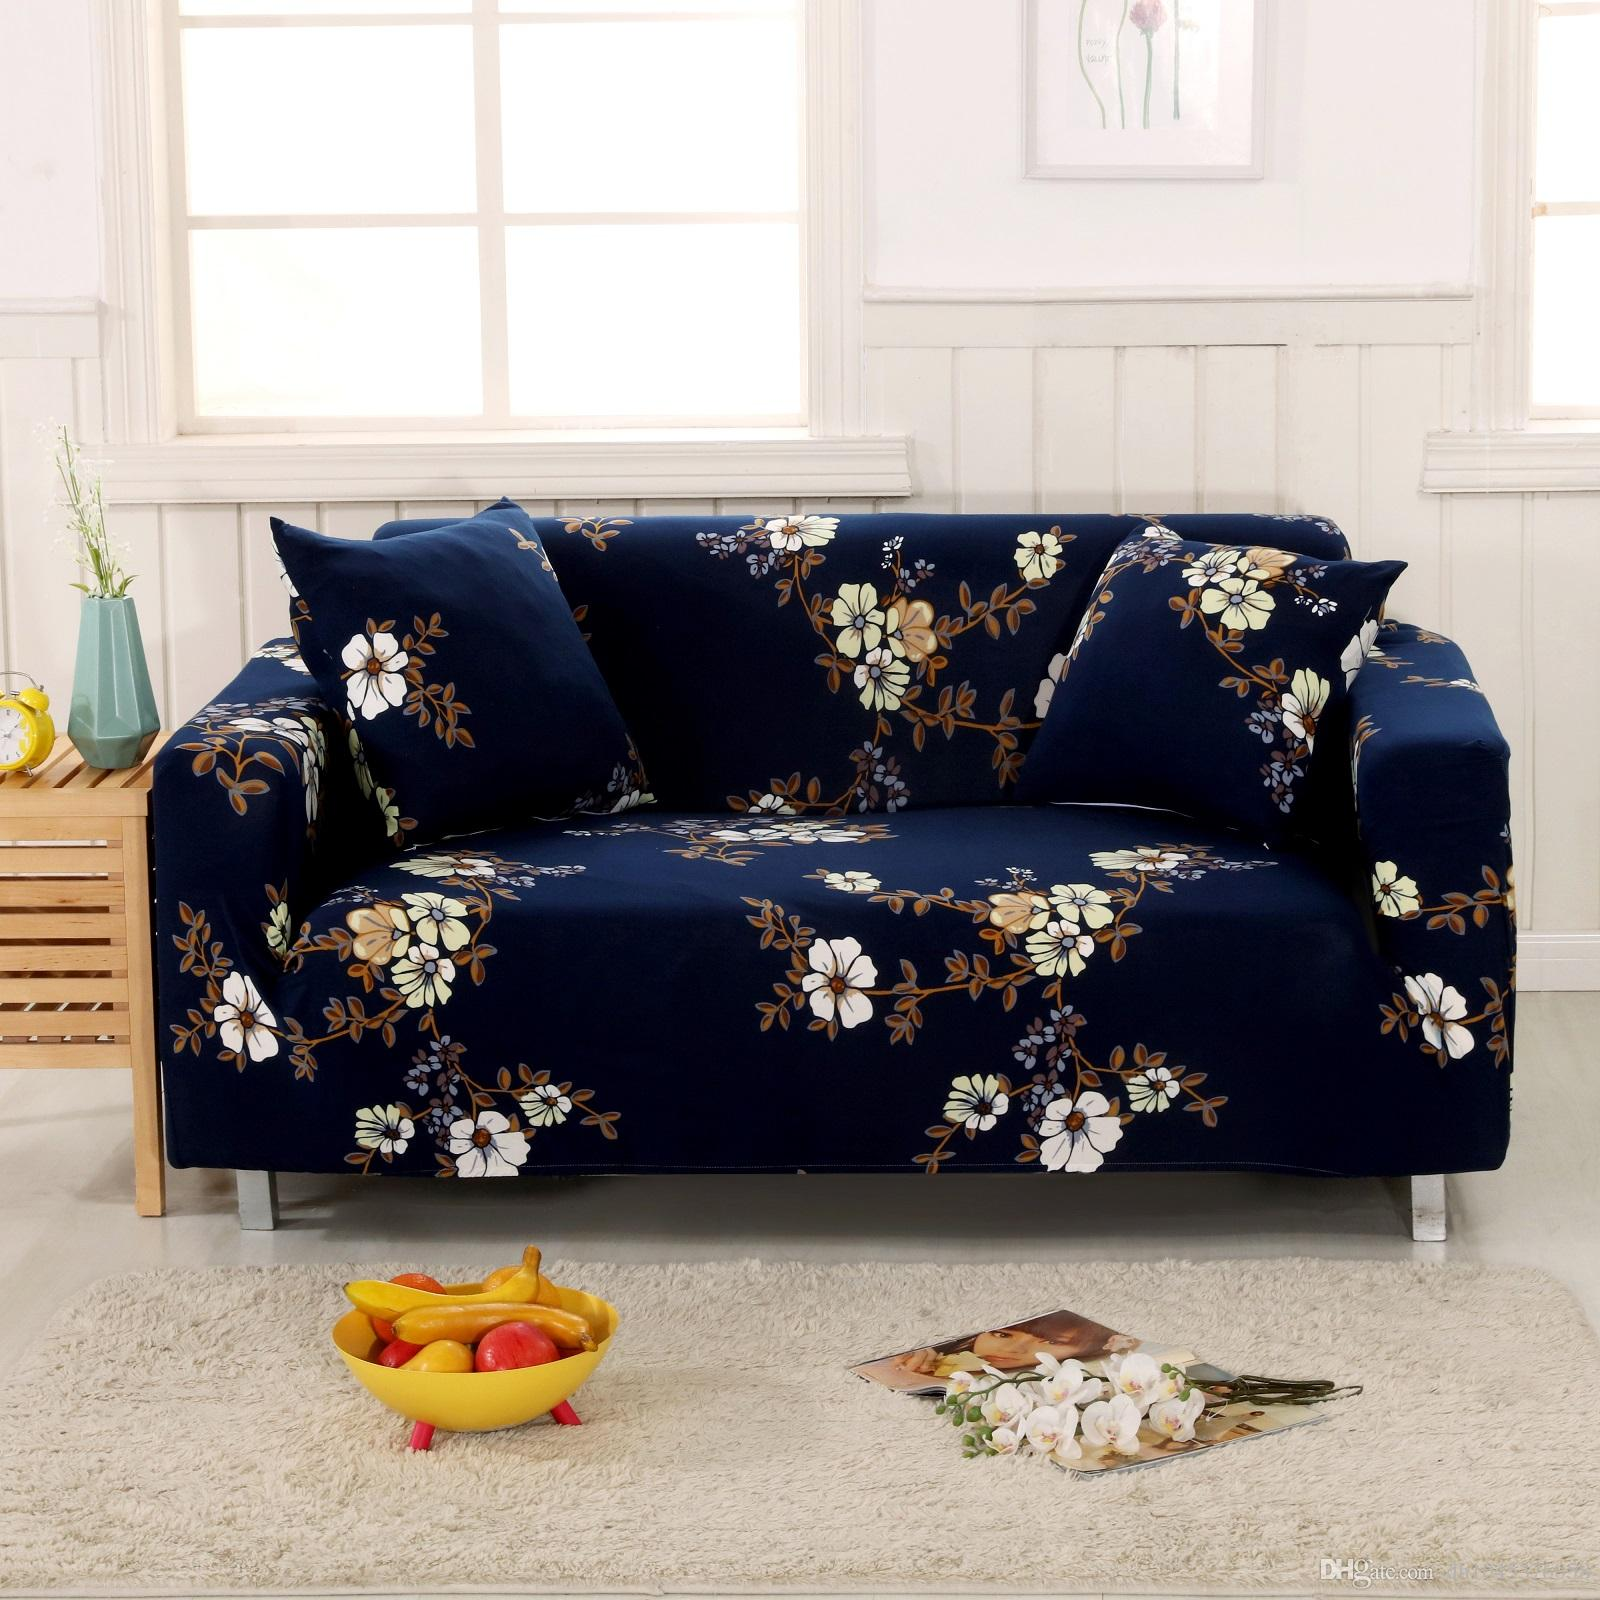 Quality Sofa Covers High Quality Printed Fabric Sofa Covers Washable Stretch Printed Sofa Cover Flower Elegant Sectional Sofa Slipcovers Home Decoration